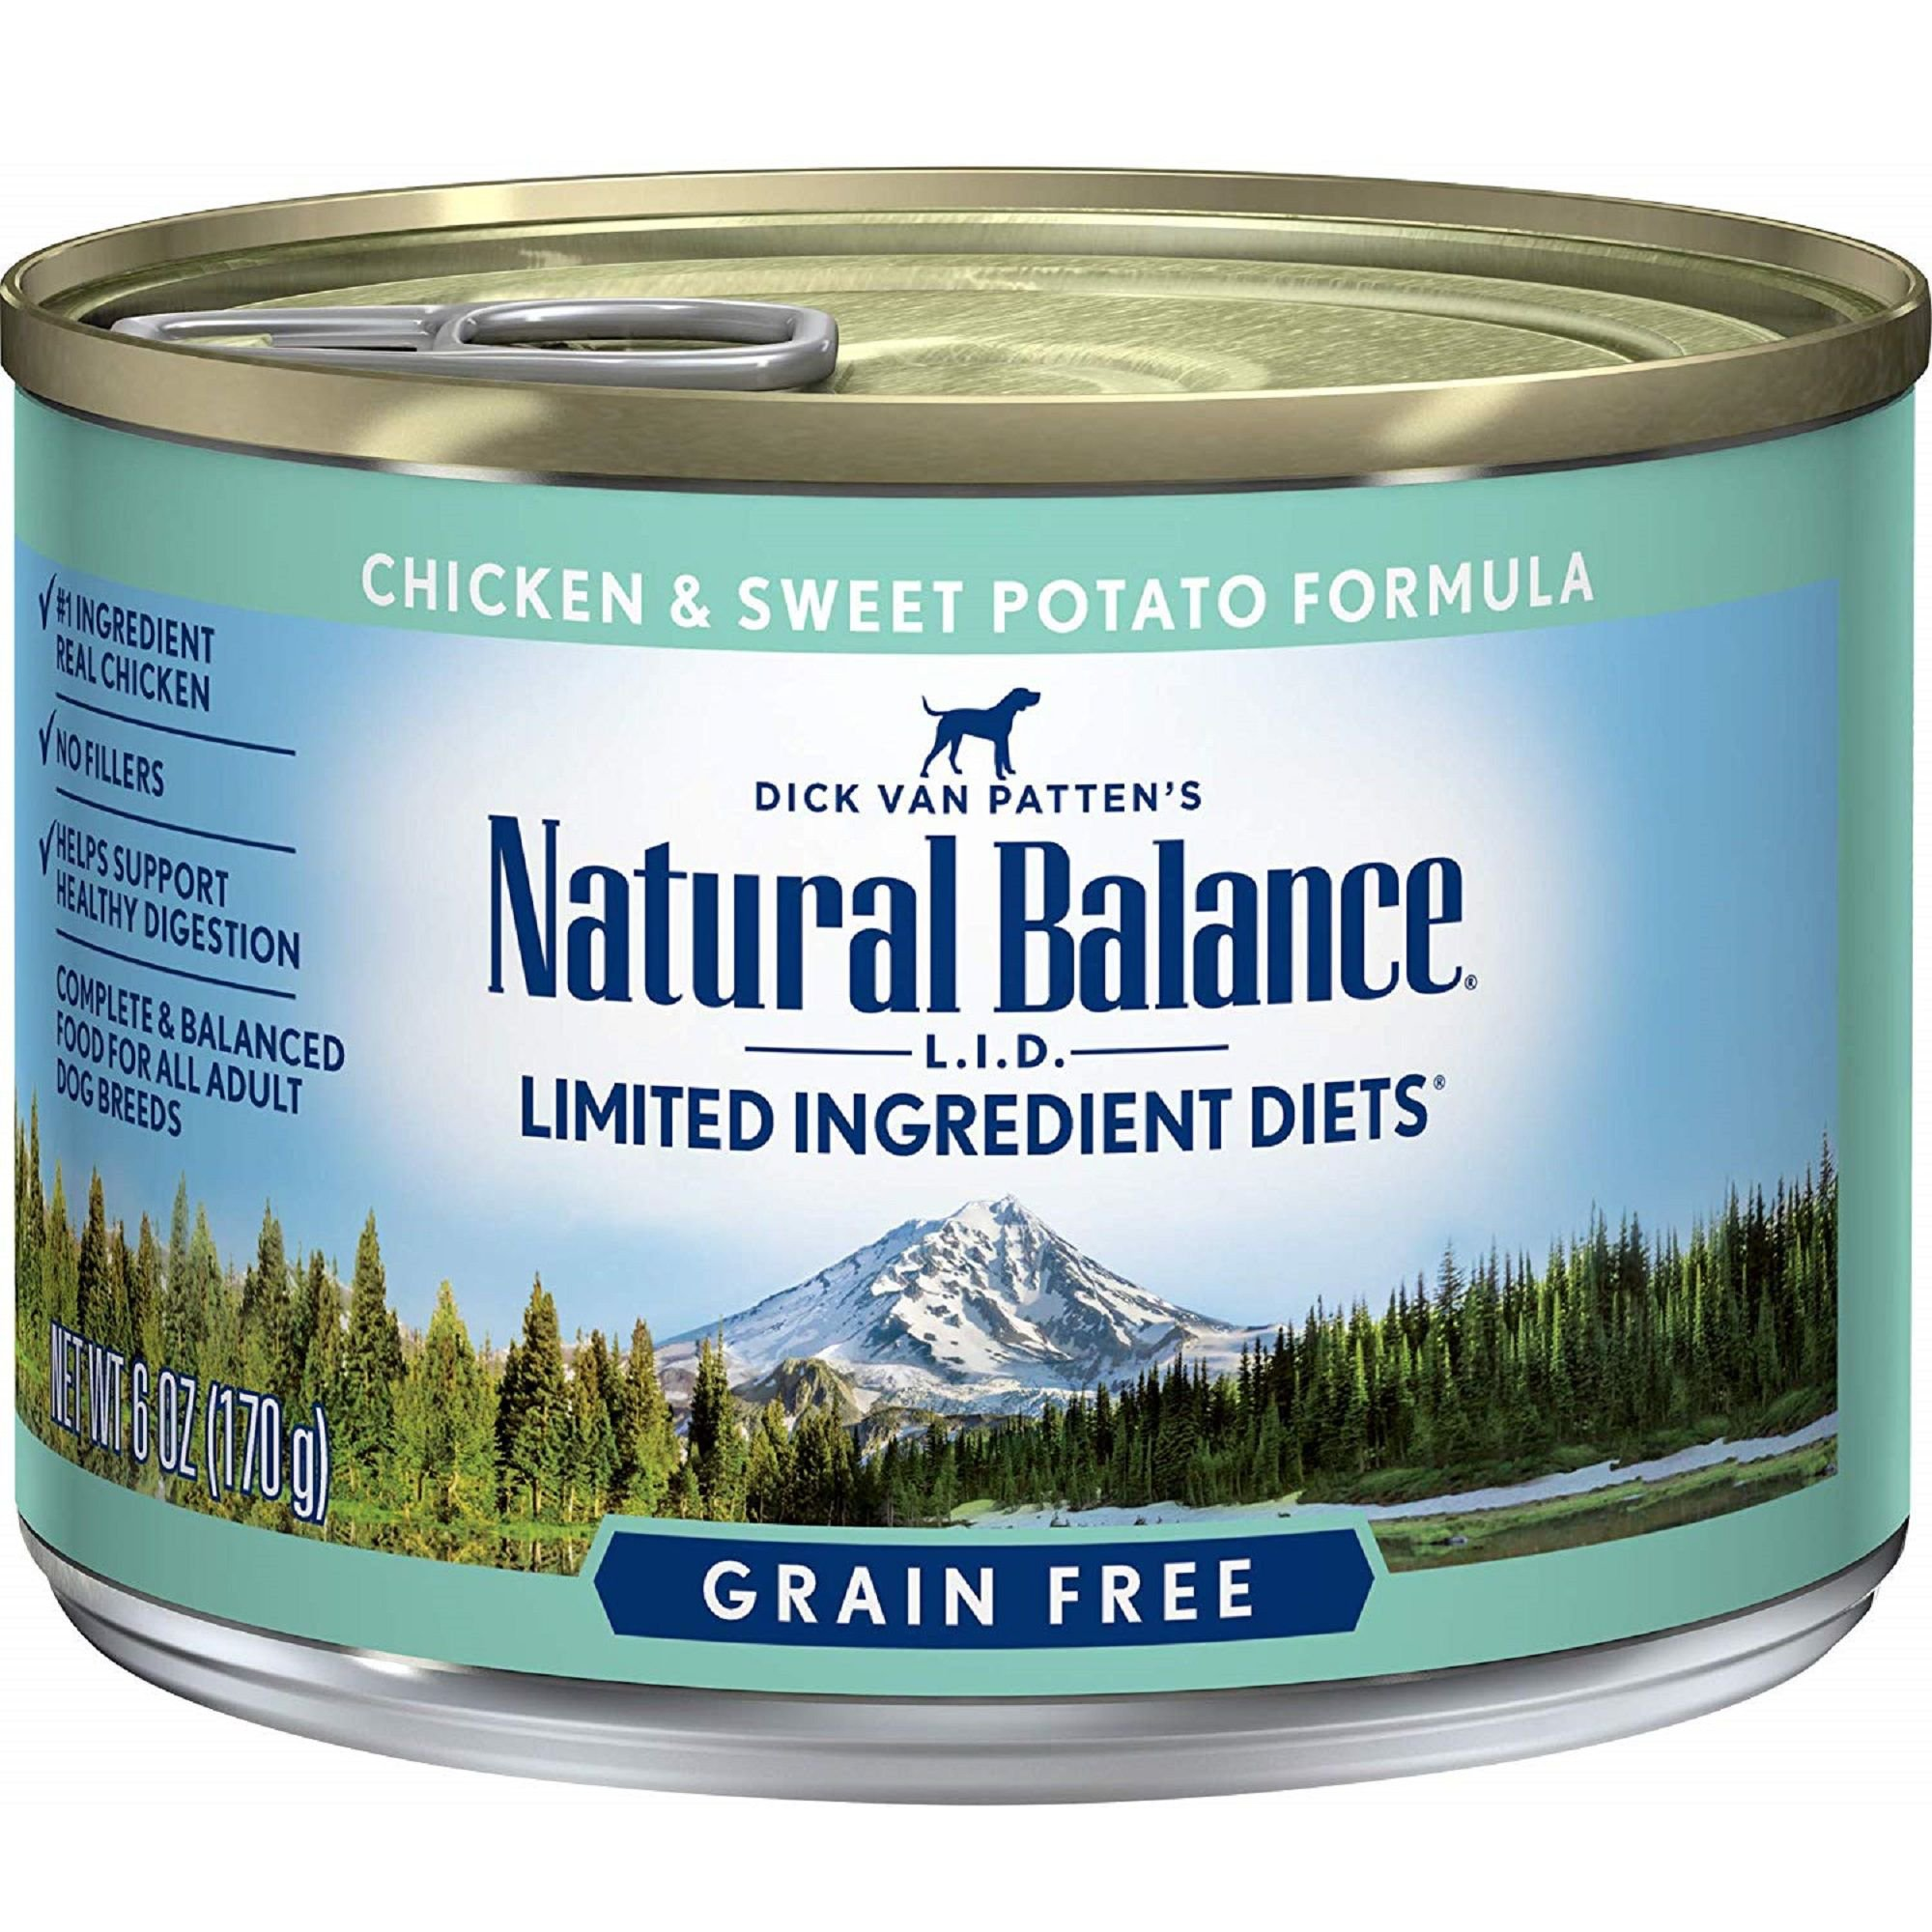 Natural Balance Limited Ingredient Diets Chicken & Sweet Potato Formula Canned Dog Food